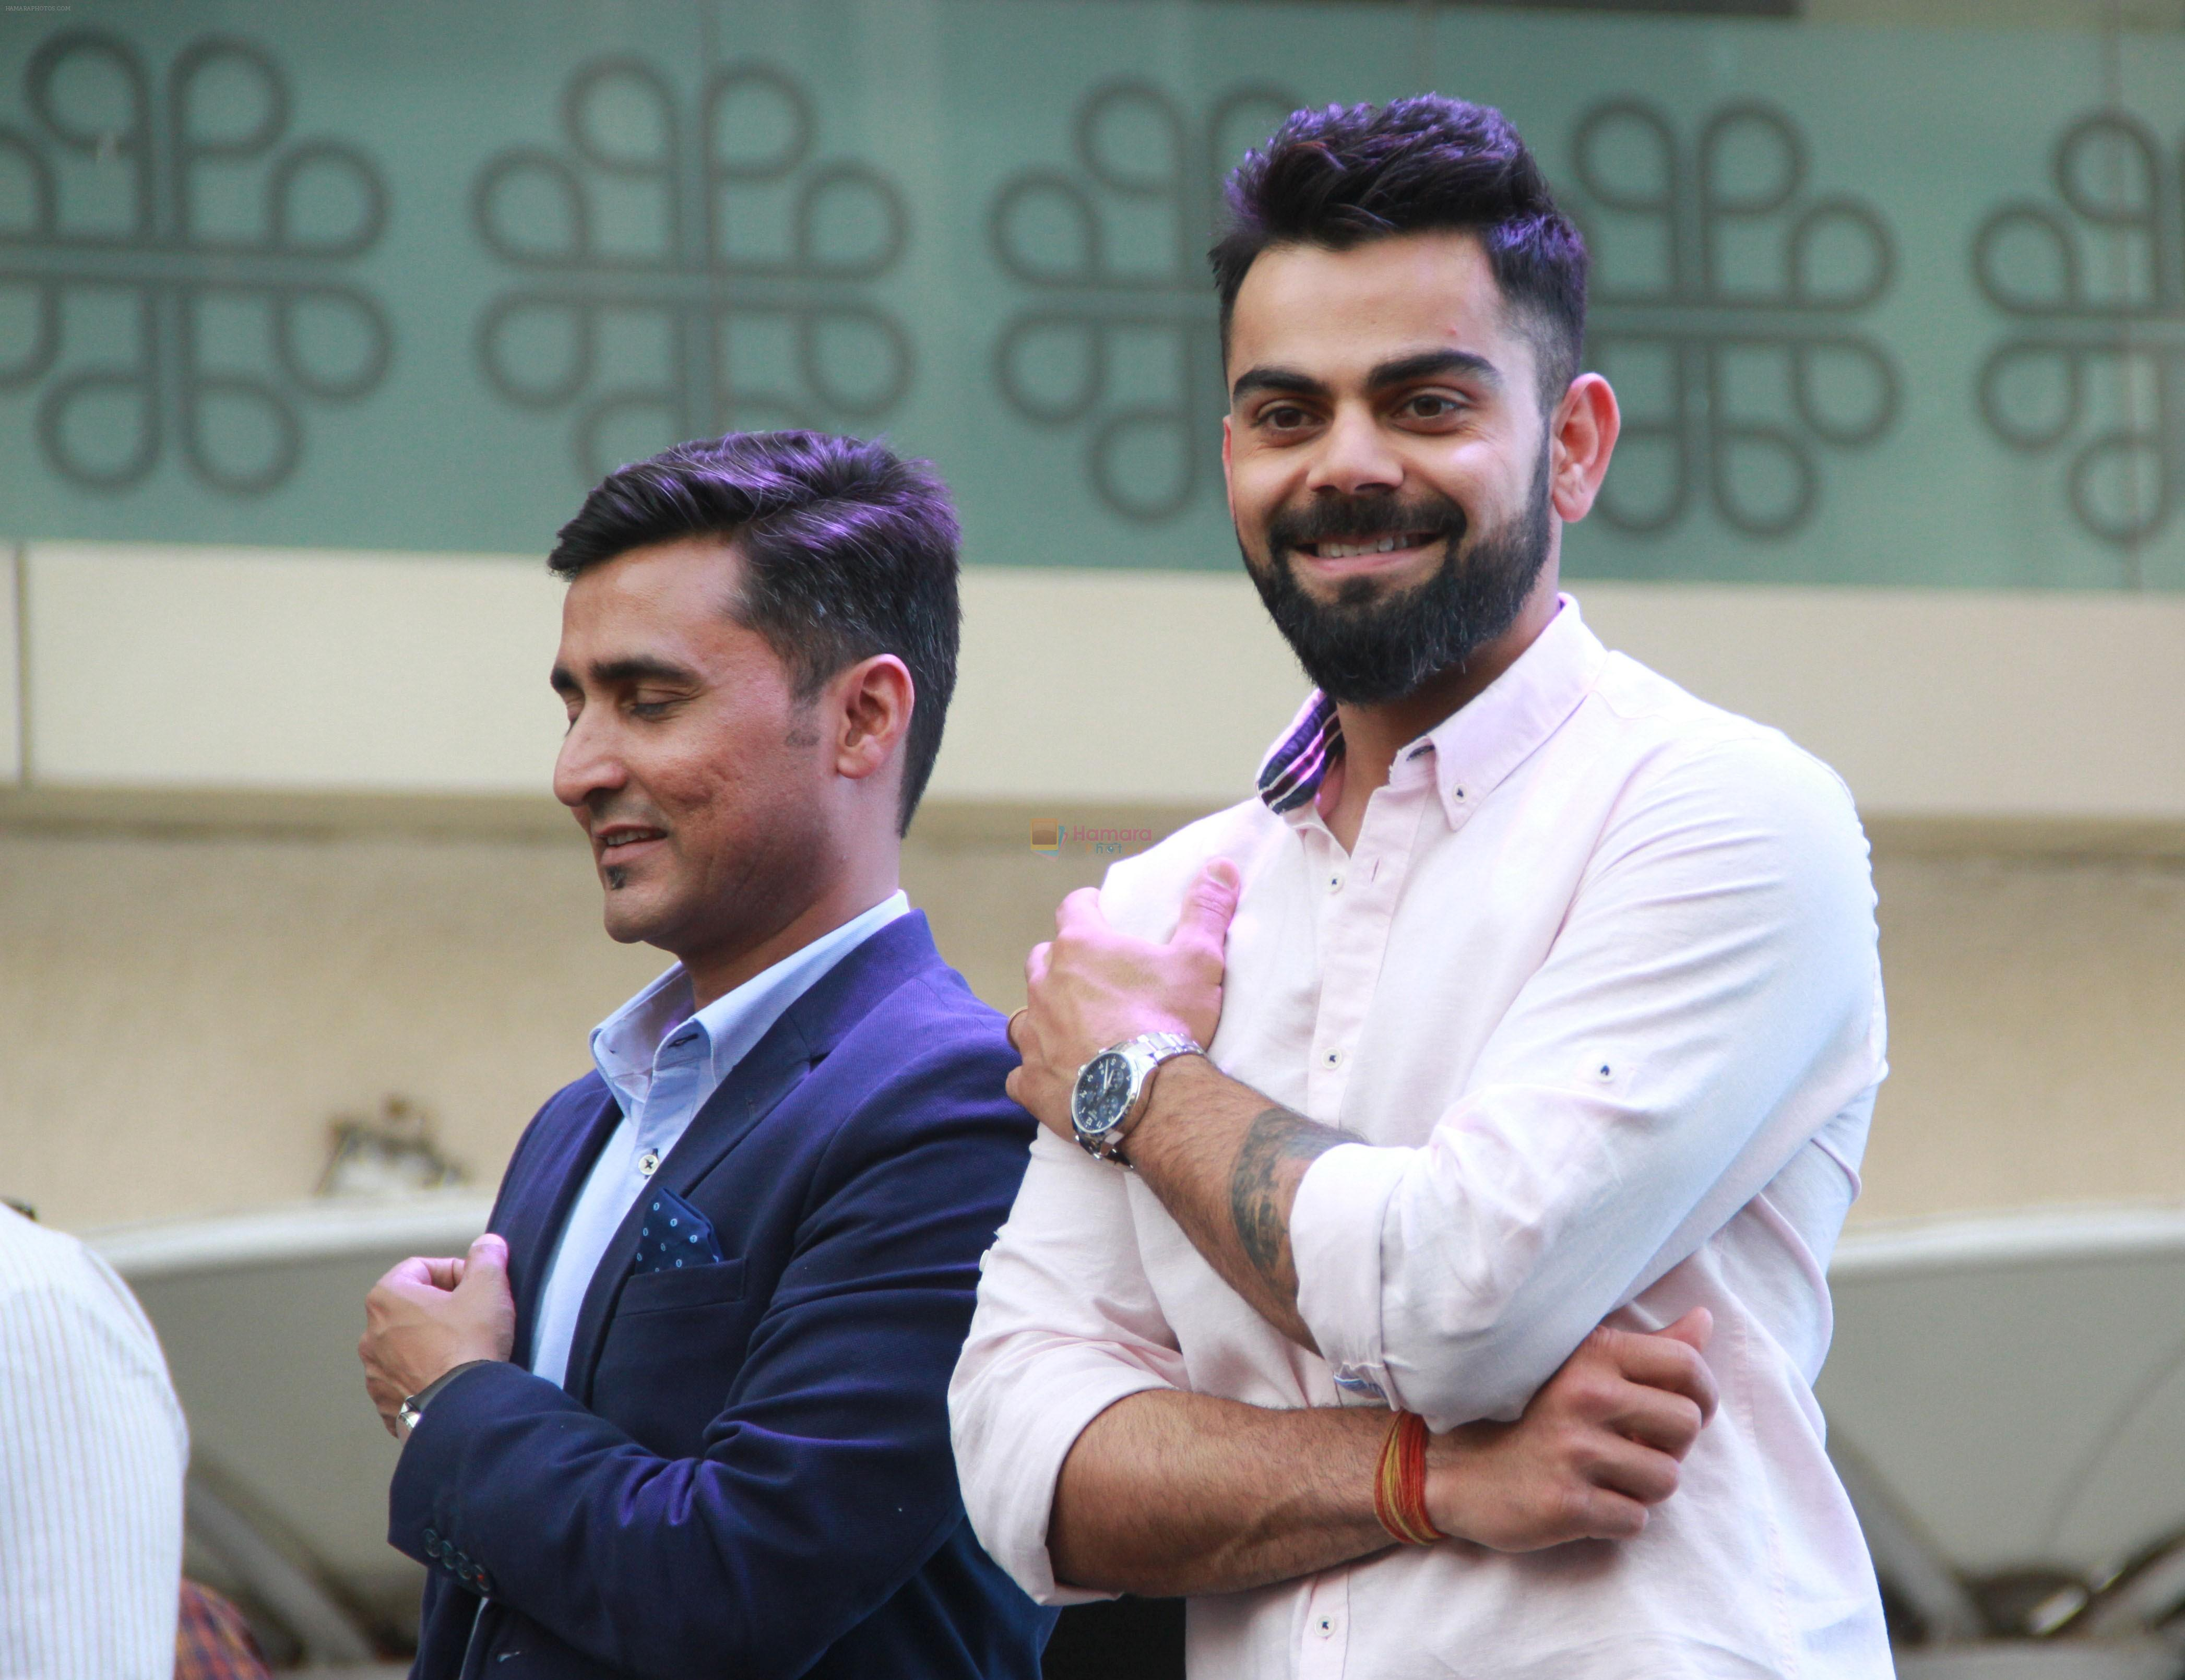 Virat Kohli at the Opening Of New Boutique Tissot An Swiss Watch Brand In Mumbai on 13th March 2018